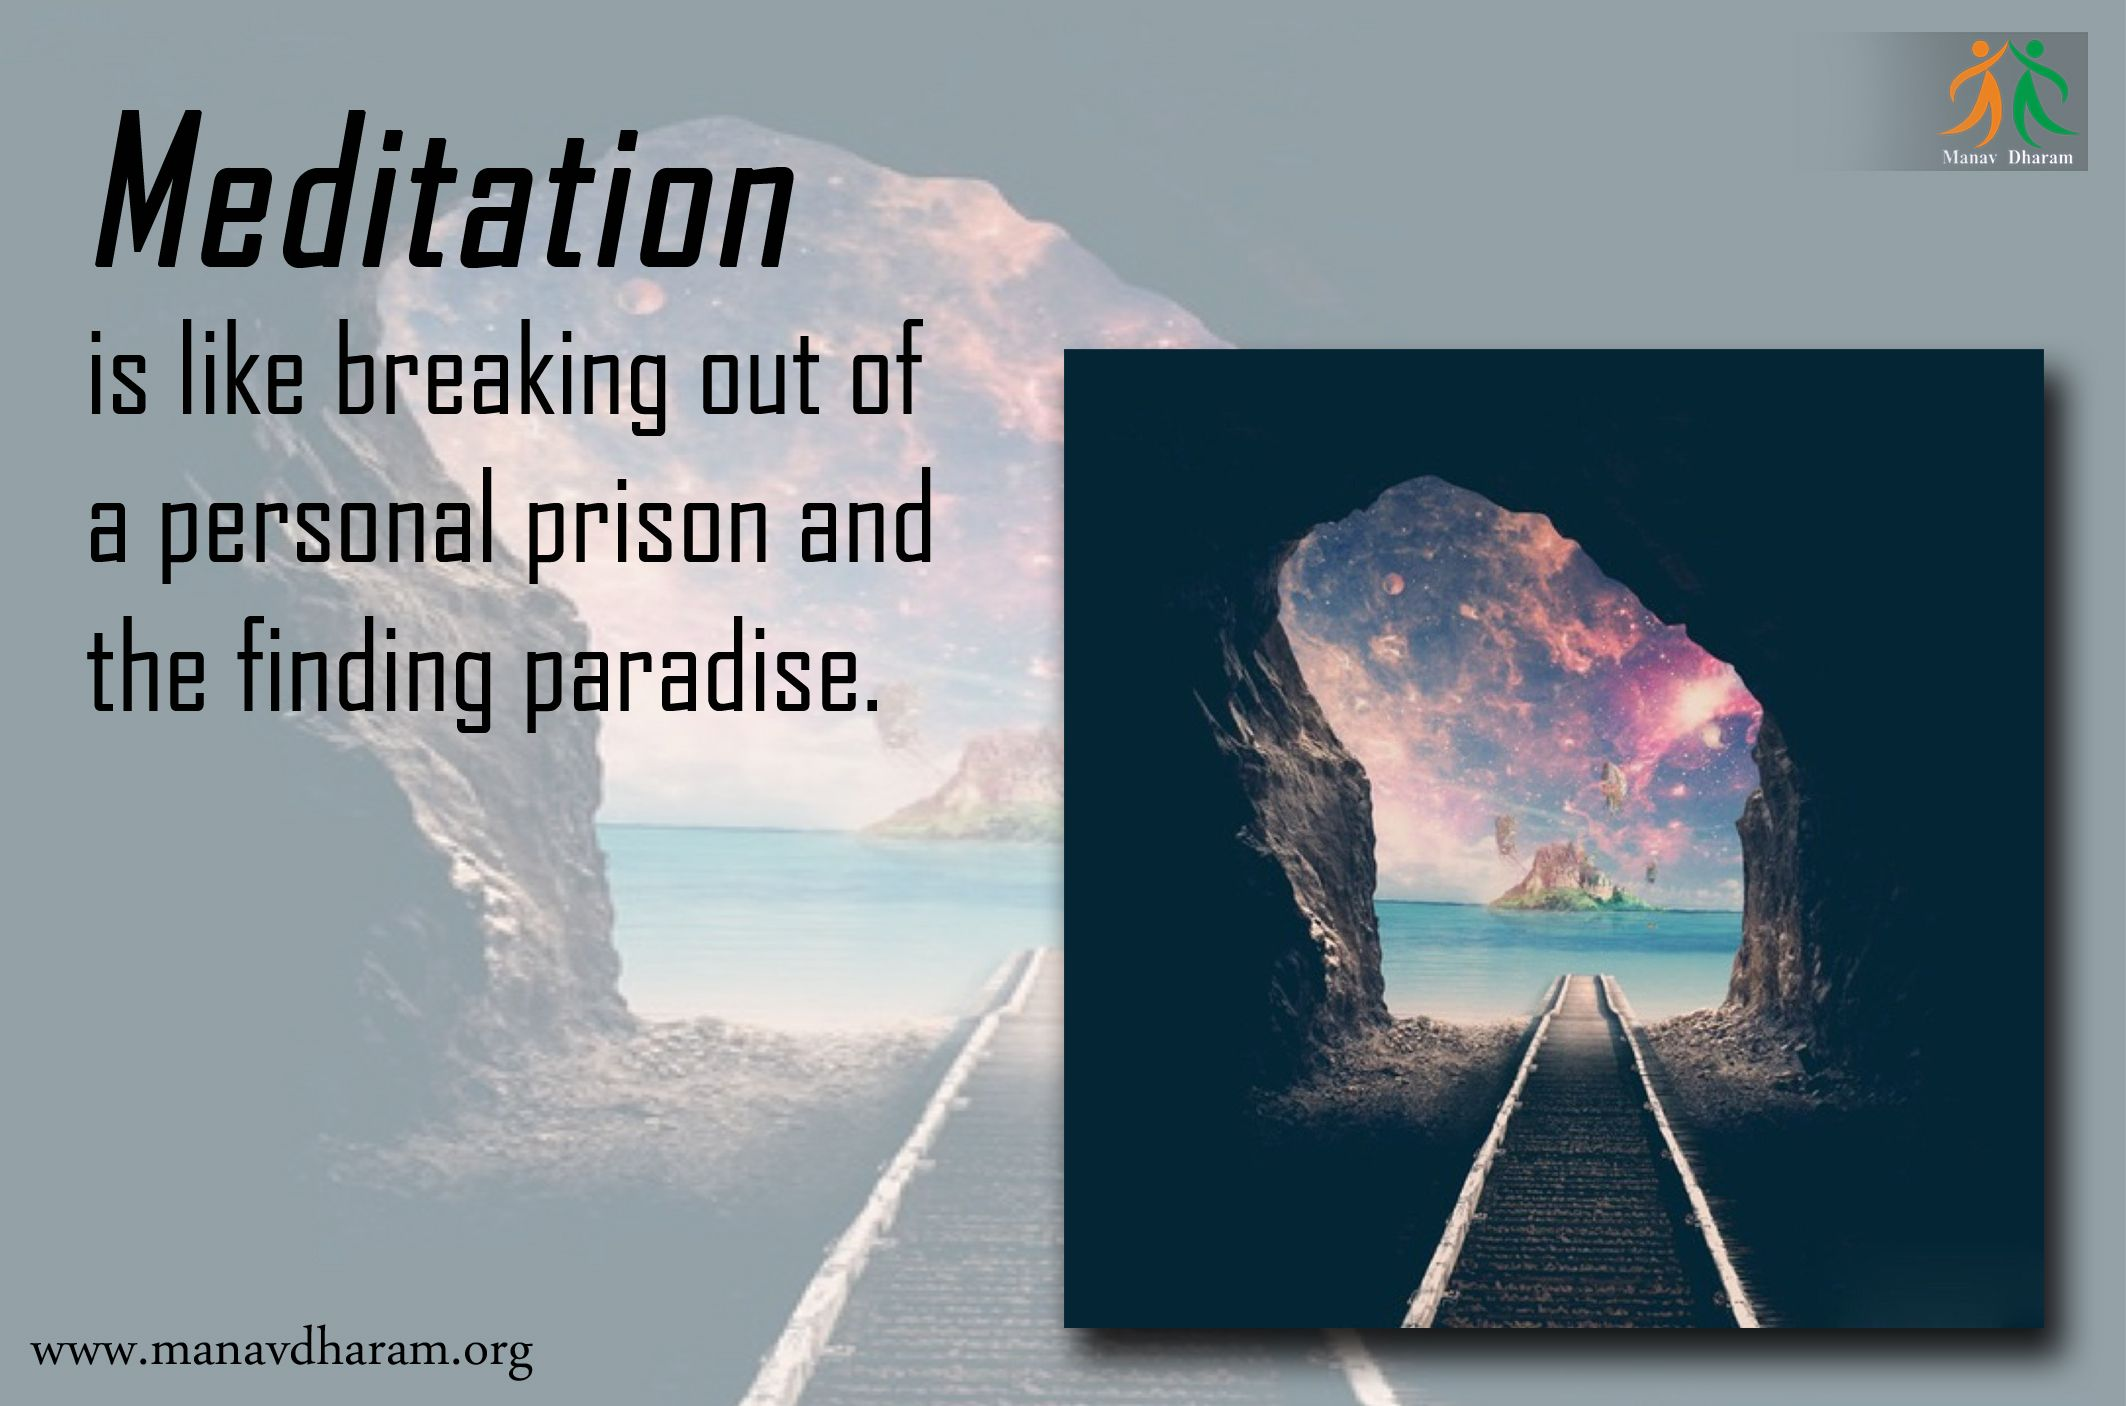 MEDITATION is like breaking out of a personal prison and